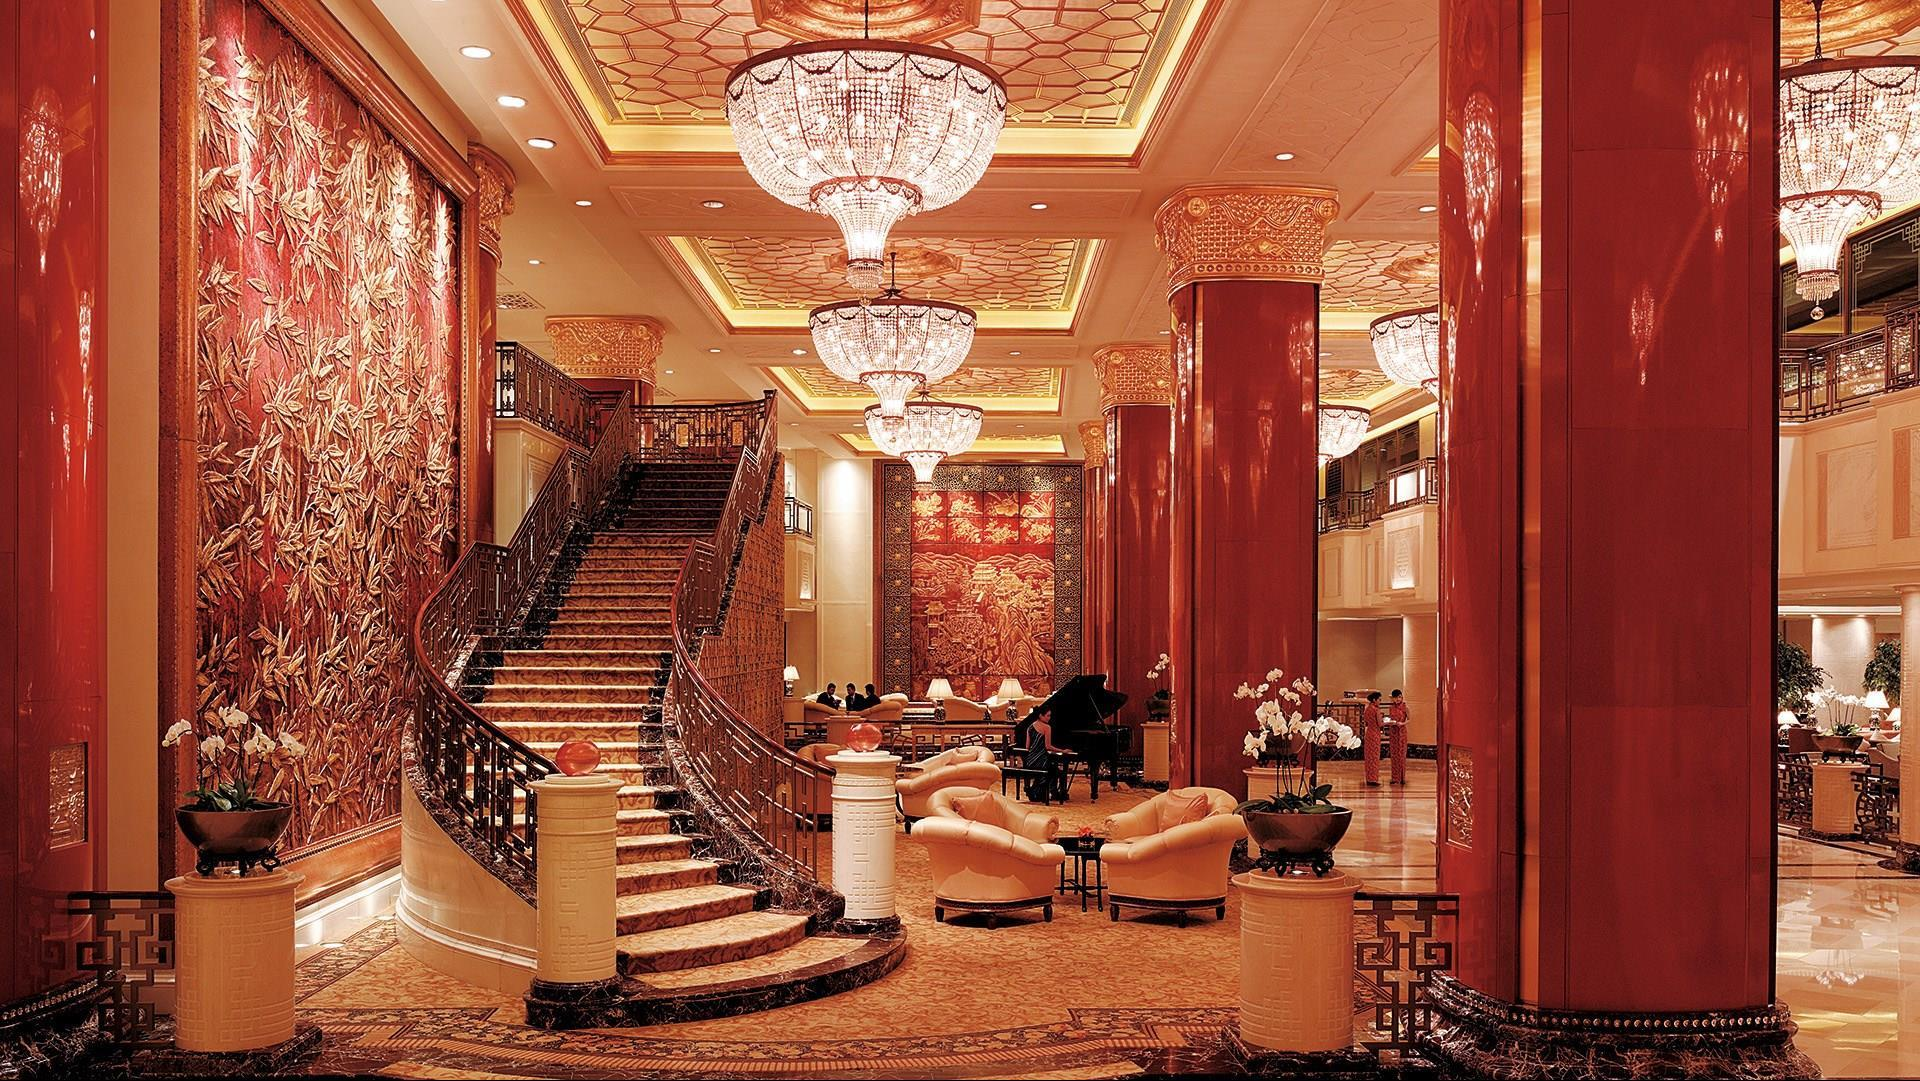 grand entrance decoration.htm meetings and events at china world hotel  beijing  beijing  cn  china world hotel  beijing